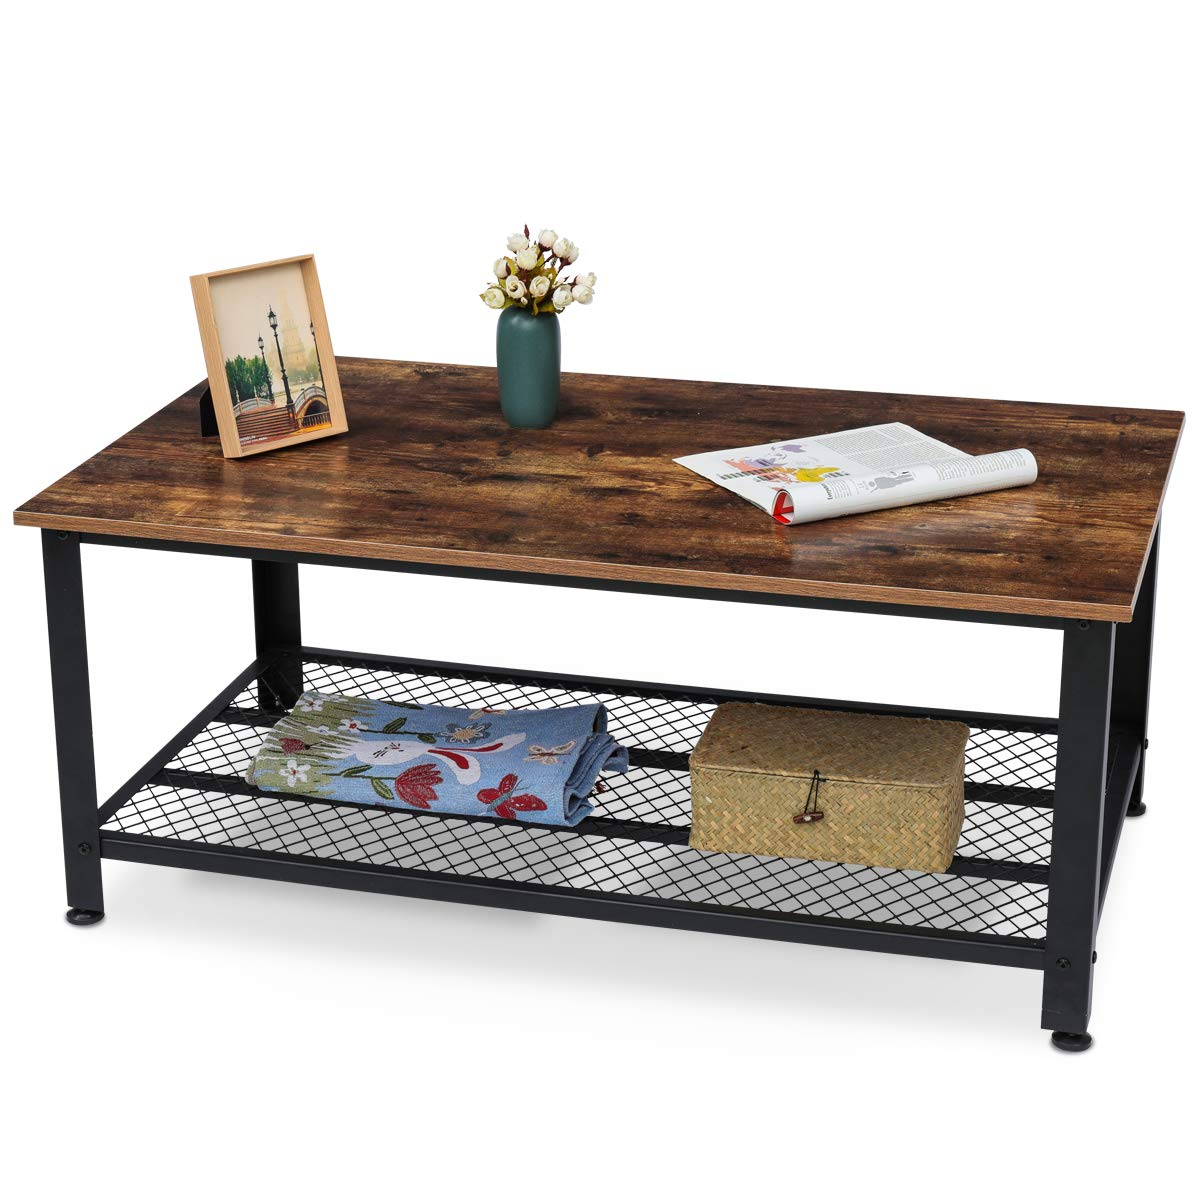 KingSo Industrial Coffee Table with Storage Shelf, Wood Look Accent Furniture with Metal Frame, Easy Assembly, Rustic Brown by KINGSO